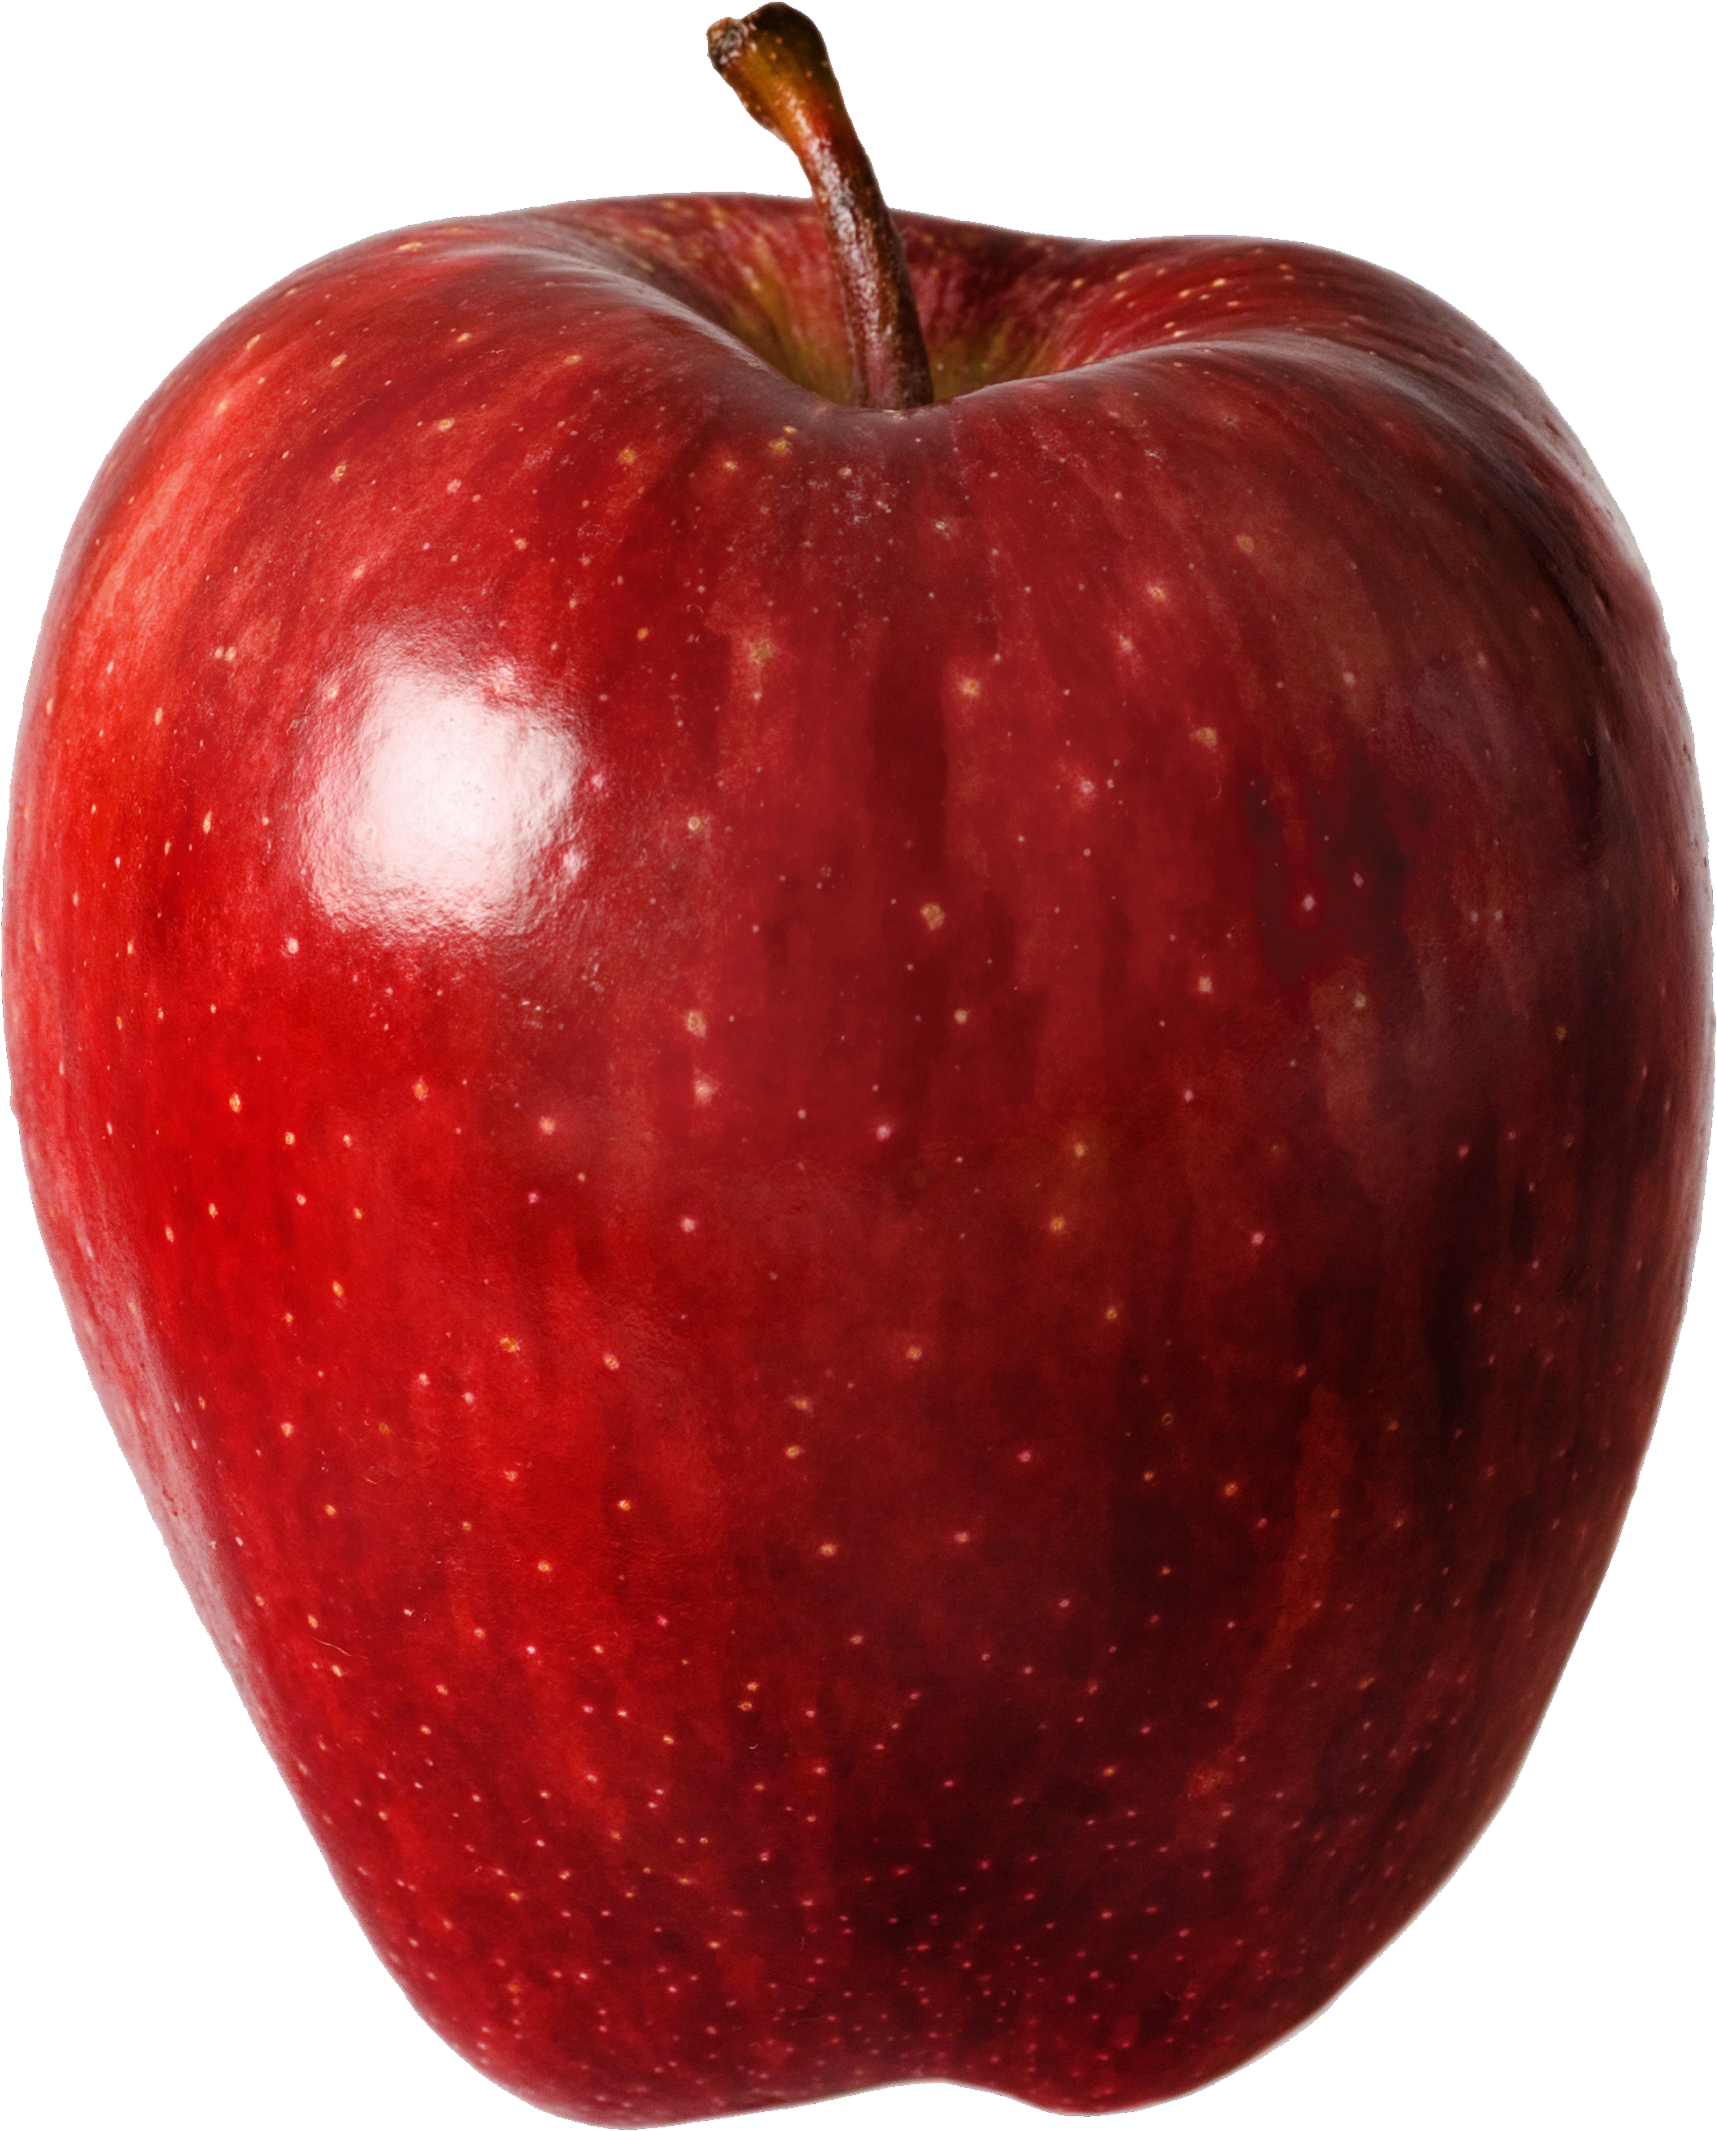 Classic Red Apple Png Image Red Delicious Apples Red Apple Apple